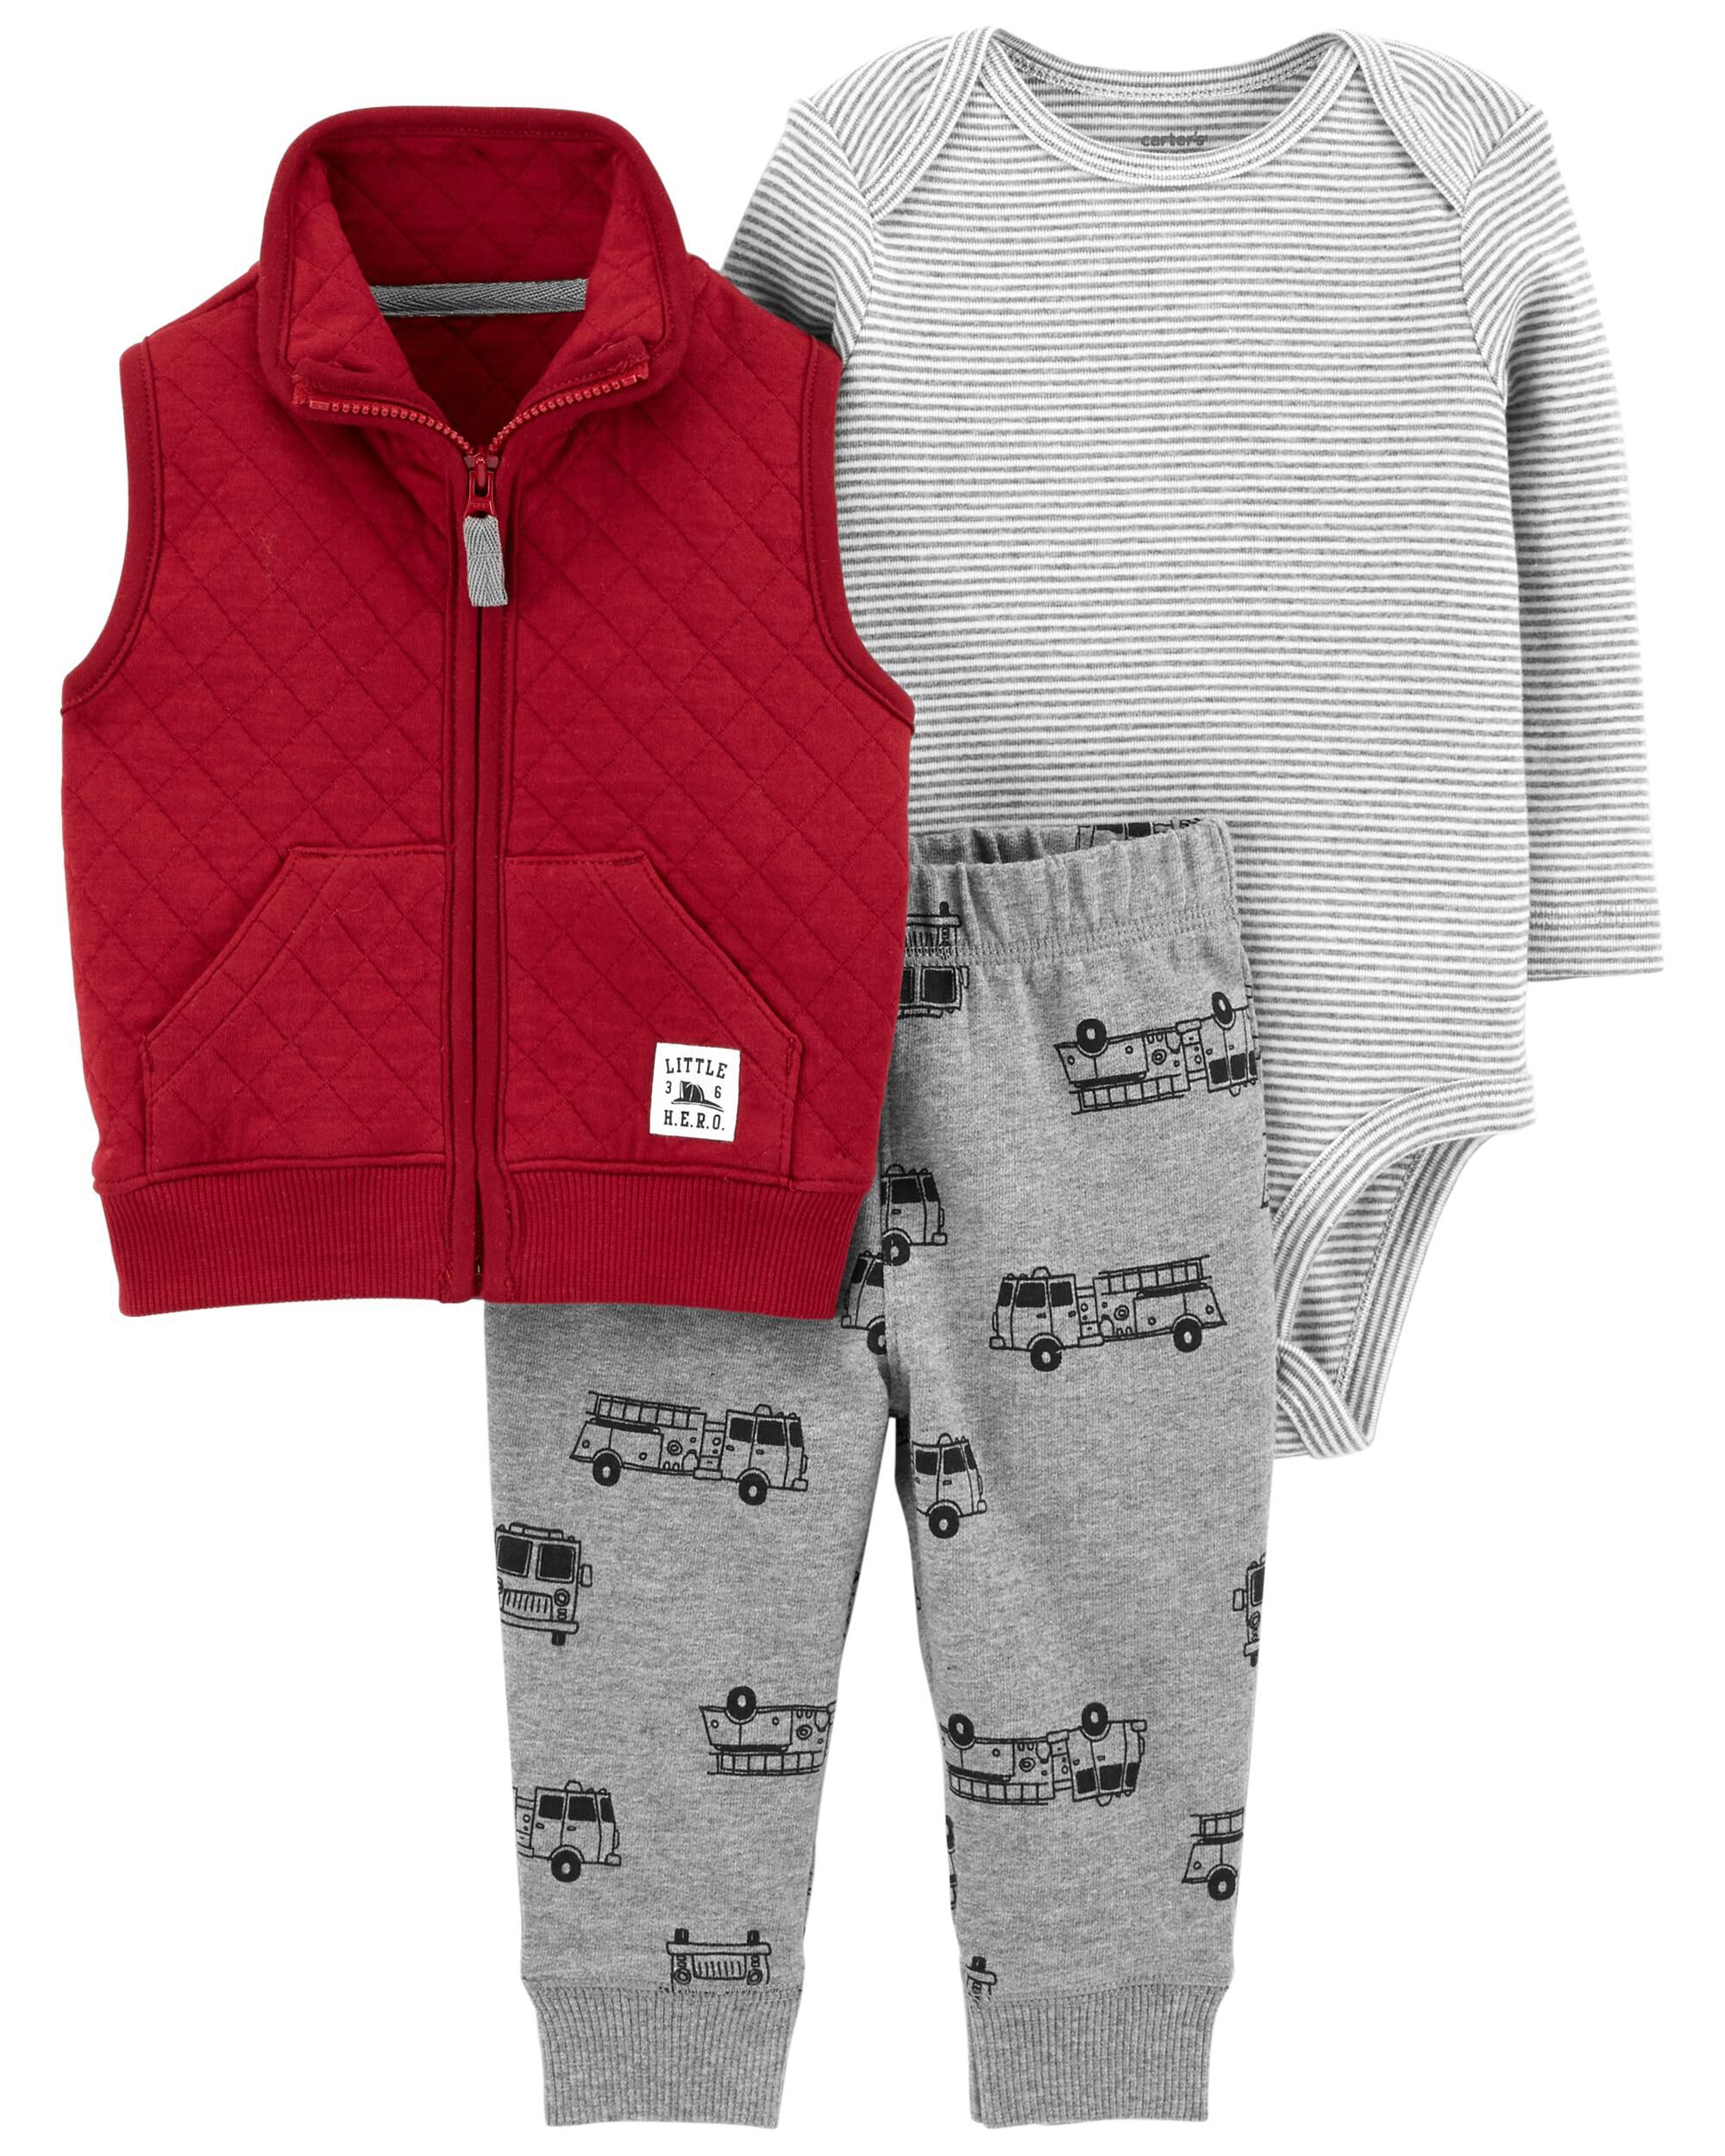 New Carter/'s Boys 3 Piece Red Fire Truck Bodysuit Top Pant Set NWT NB 6m 12m 24m